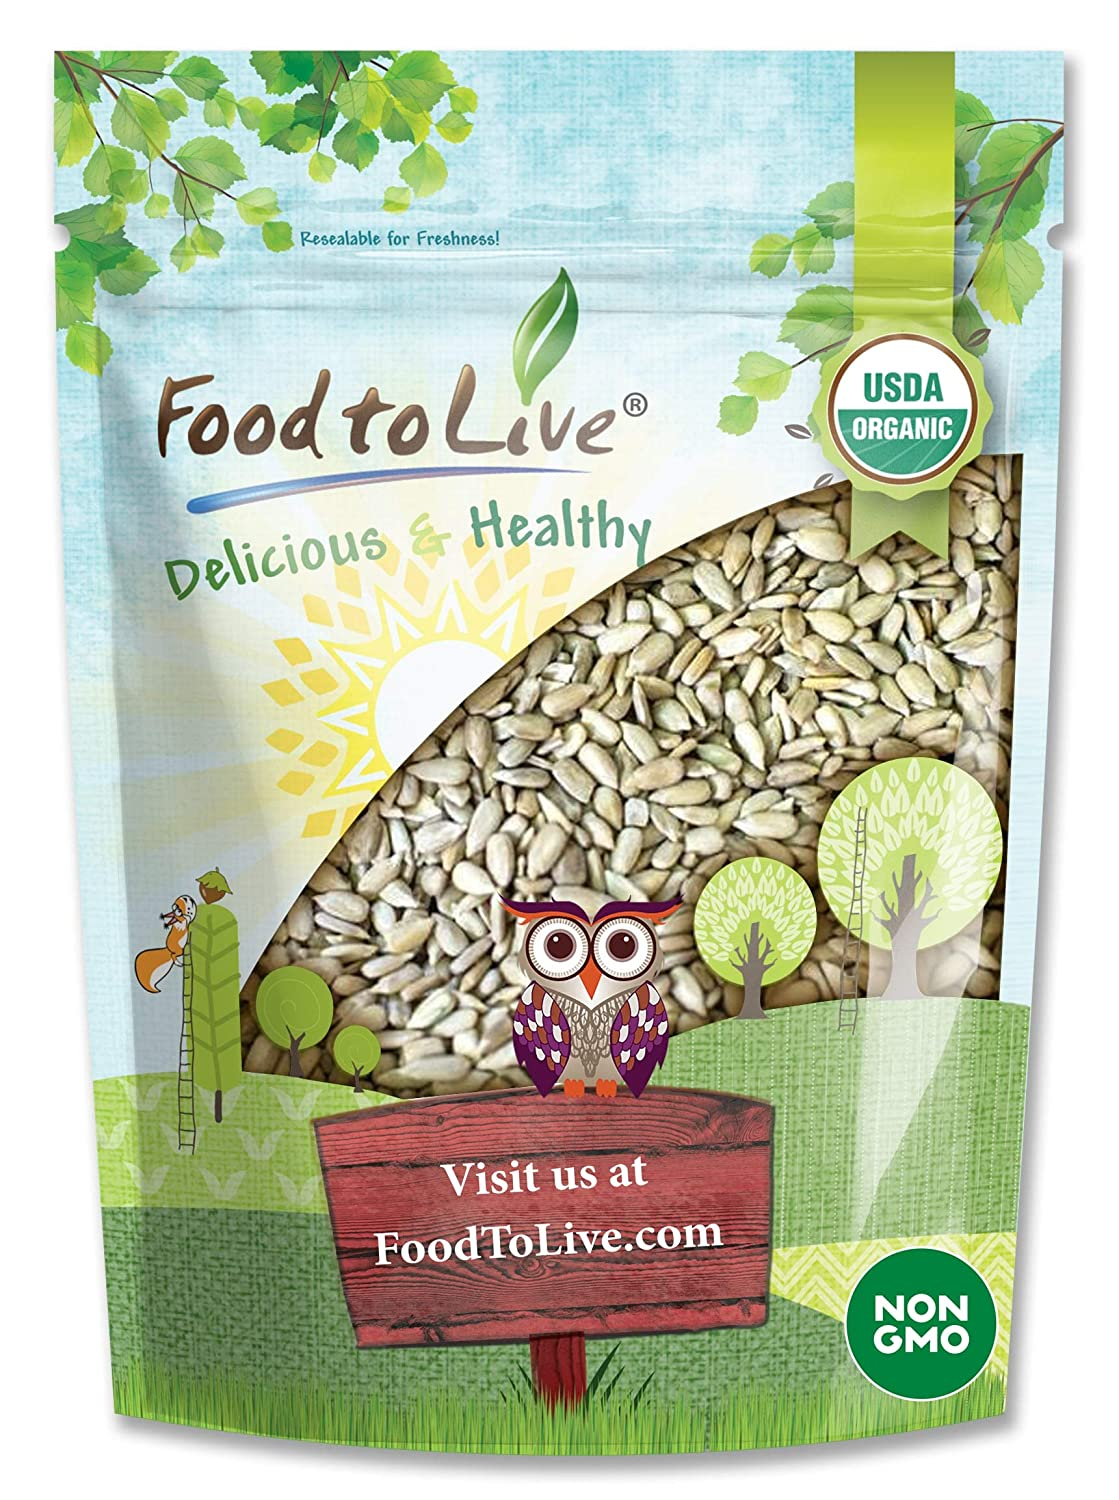 Organic Sprouted Sunflower Seeds, 4 Pounds — Non-GMO, Kosher, No Shell, Unsalted, Raw Kernels, Vegan Superfood, Sirtfood, Bulk